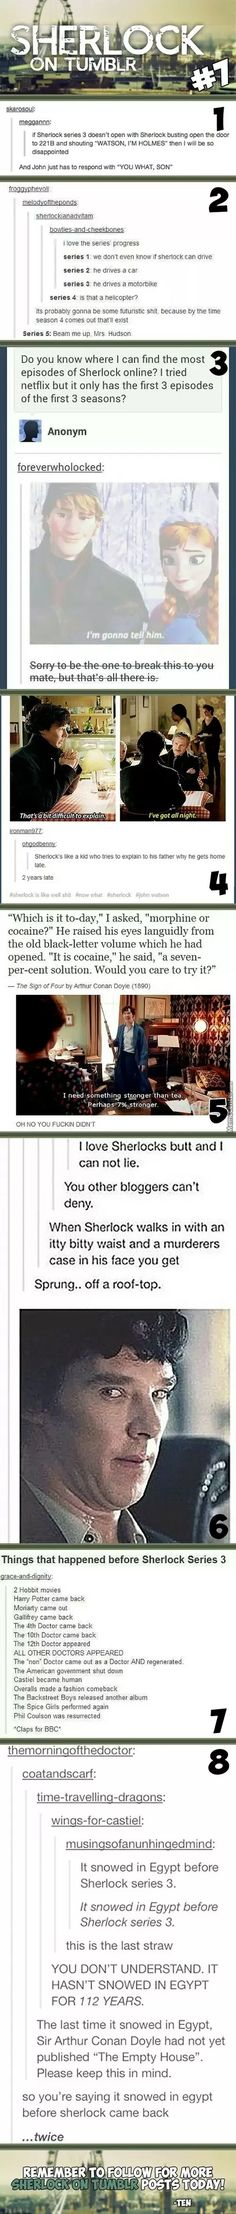 Sherlock On Tumblr #7